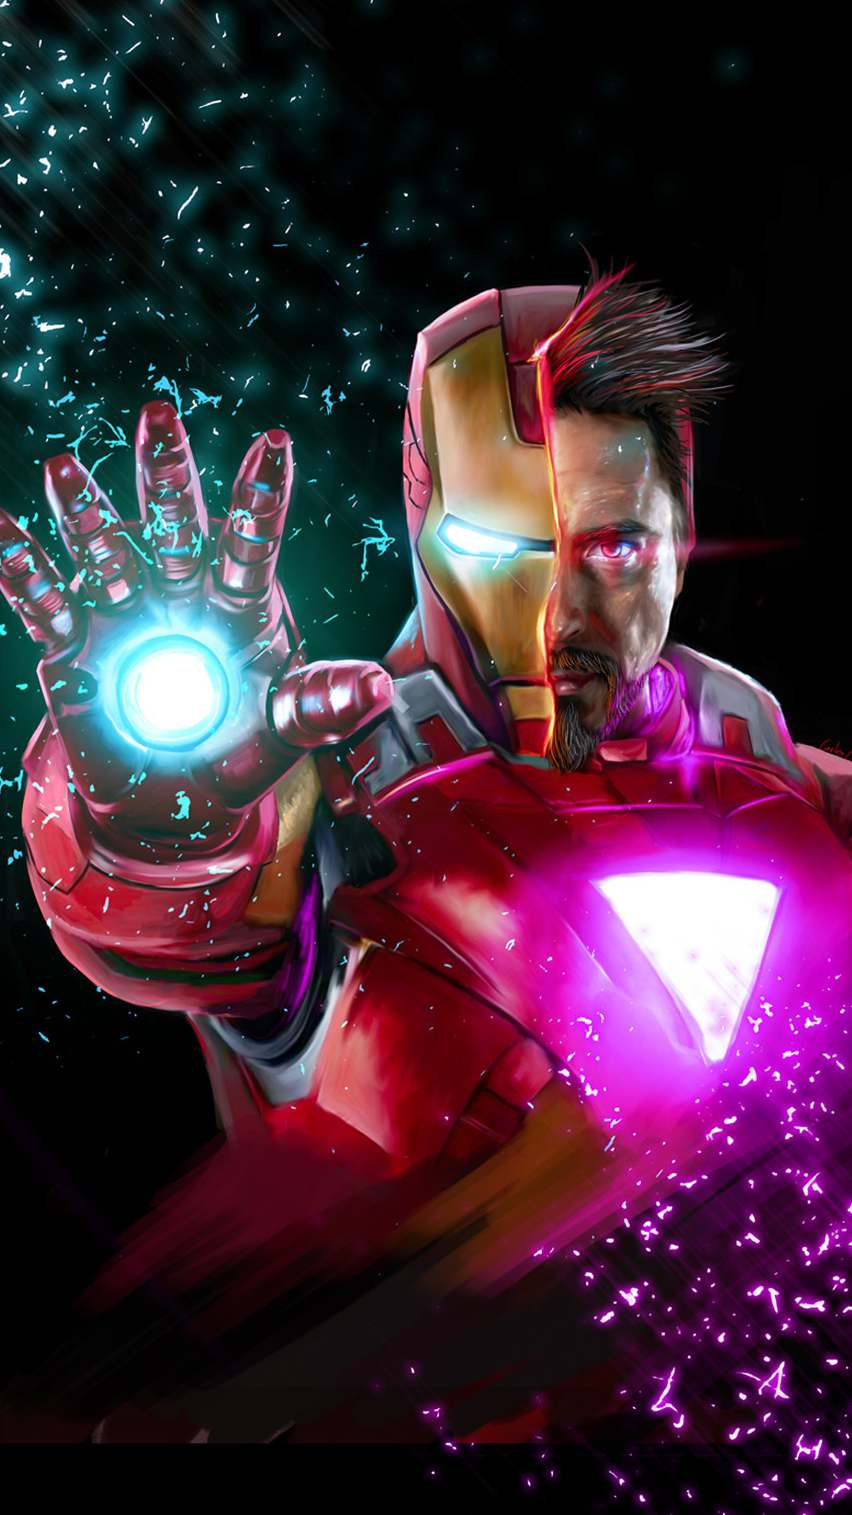 Avengers Endgame Tony Stark Iron Man iPhone Wallpaper